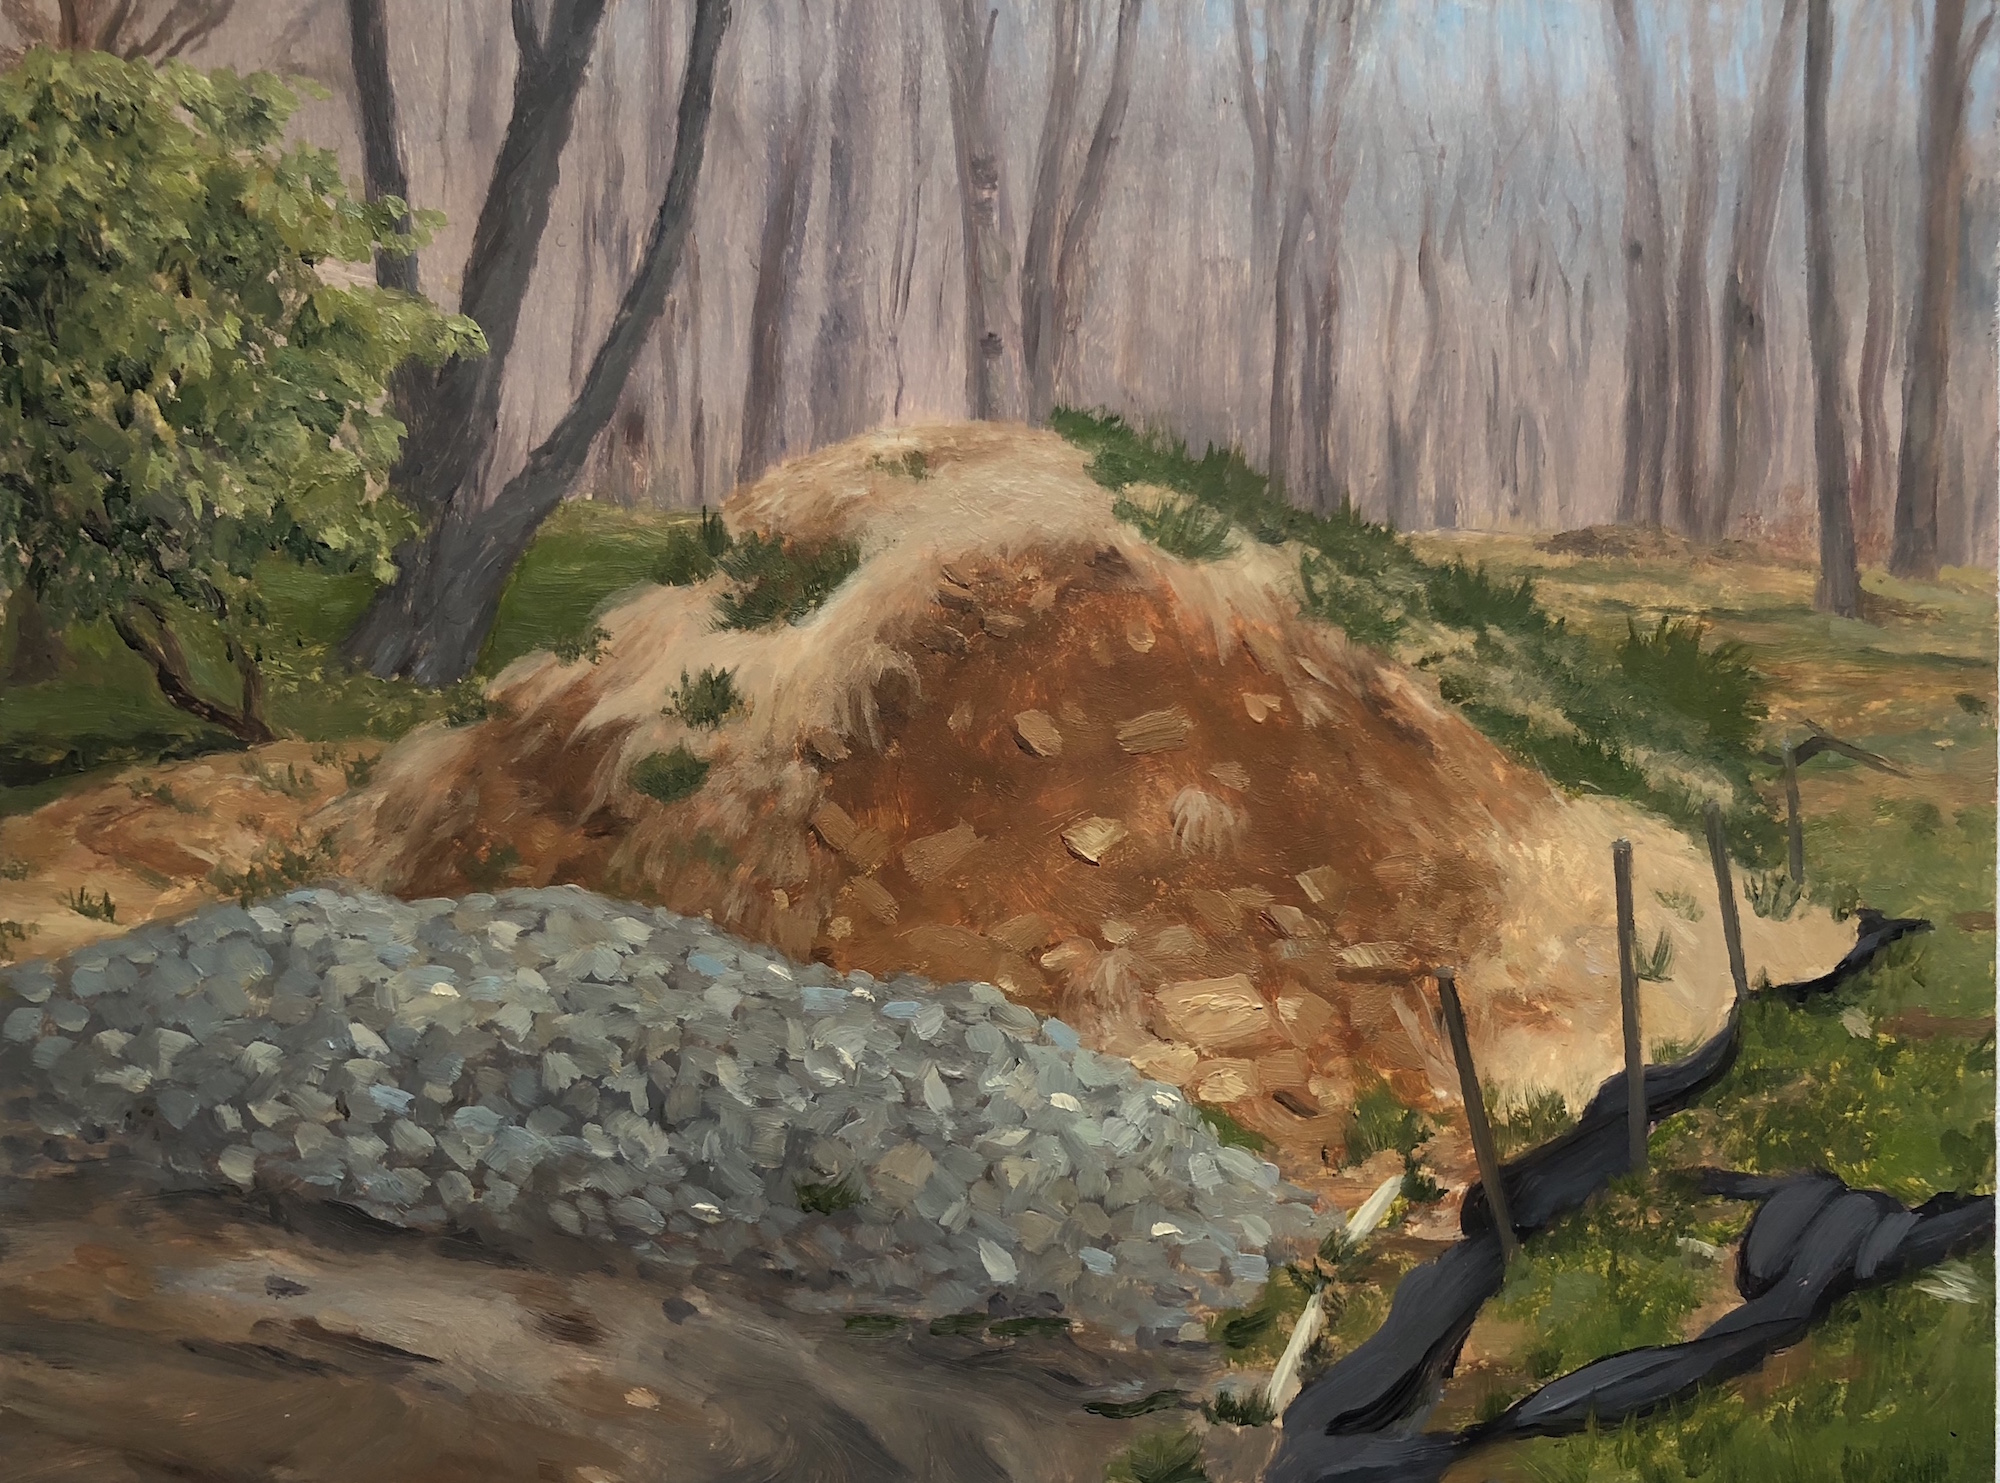 Dirt Pile With Coarse Gravel  (Dirt Pile #3) Oil on panel 5 by 8 inches April 29, 2018